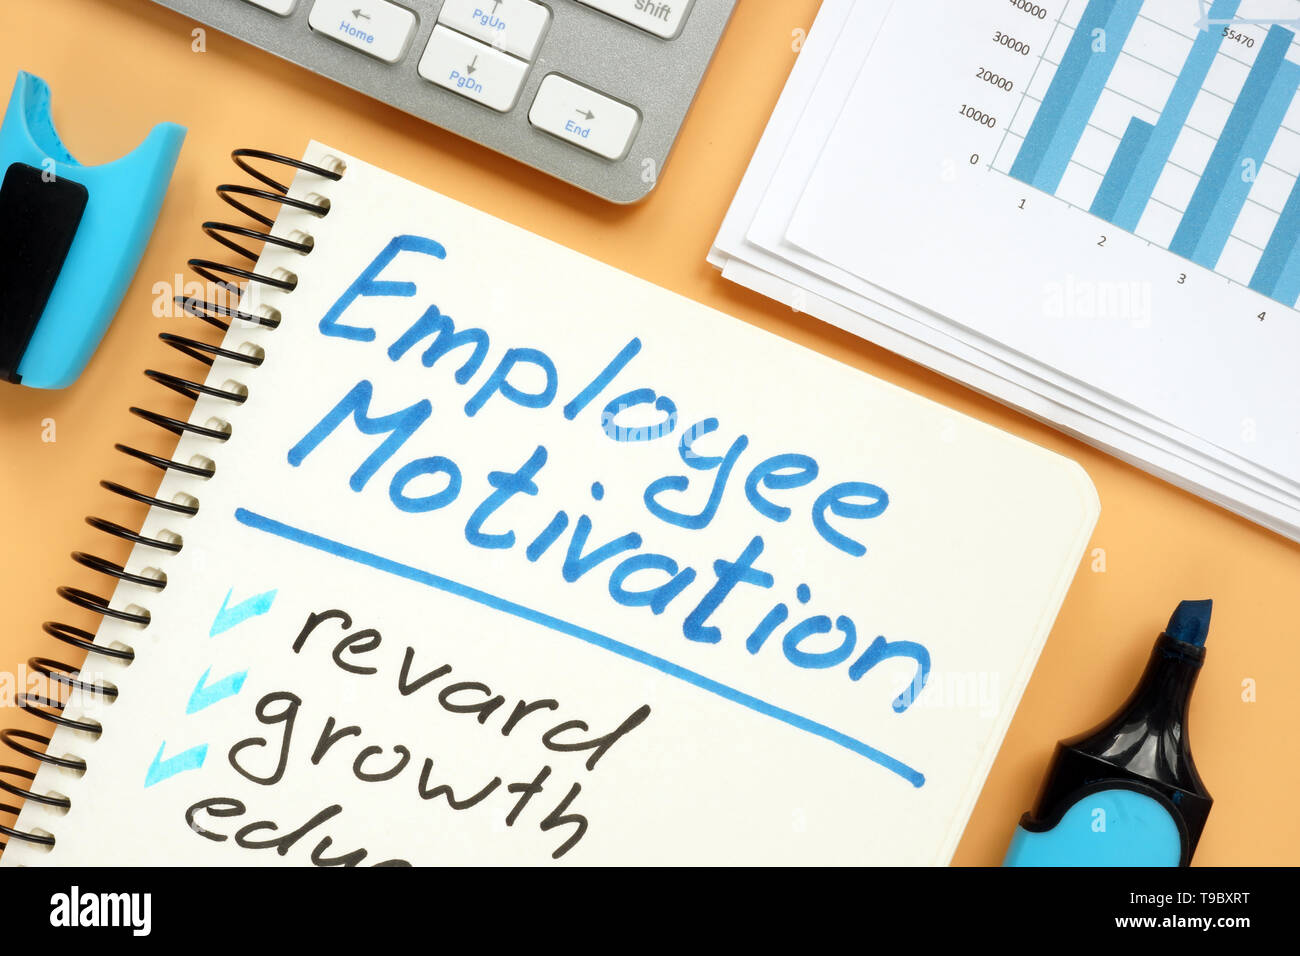 Employee motivation plan with words reward and growth. - Stock Image